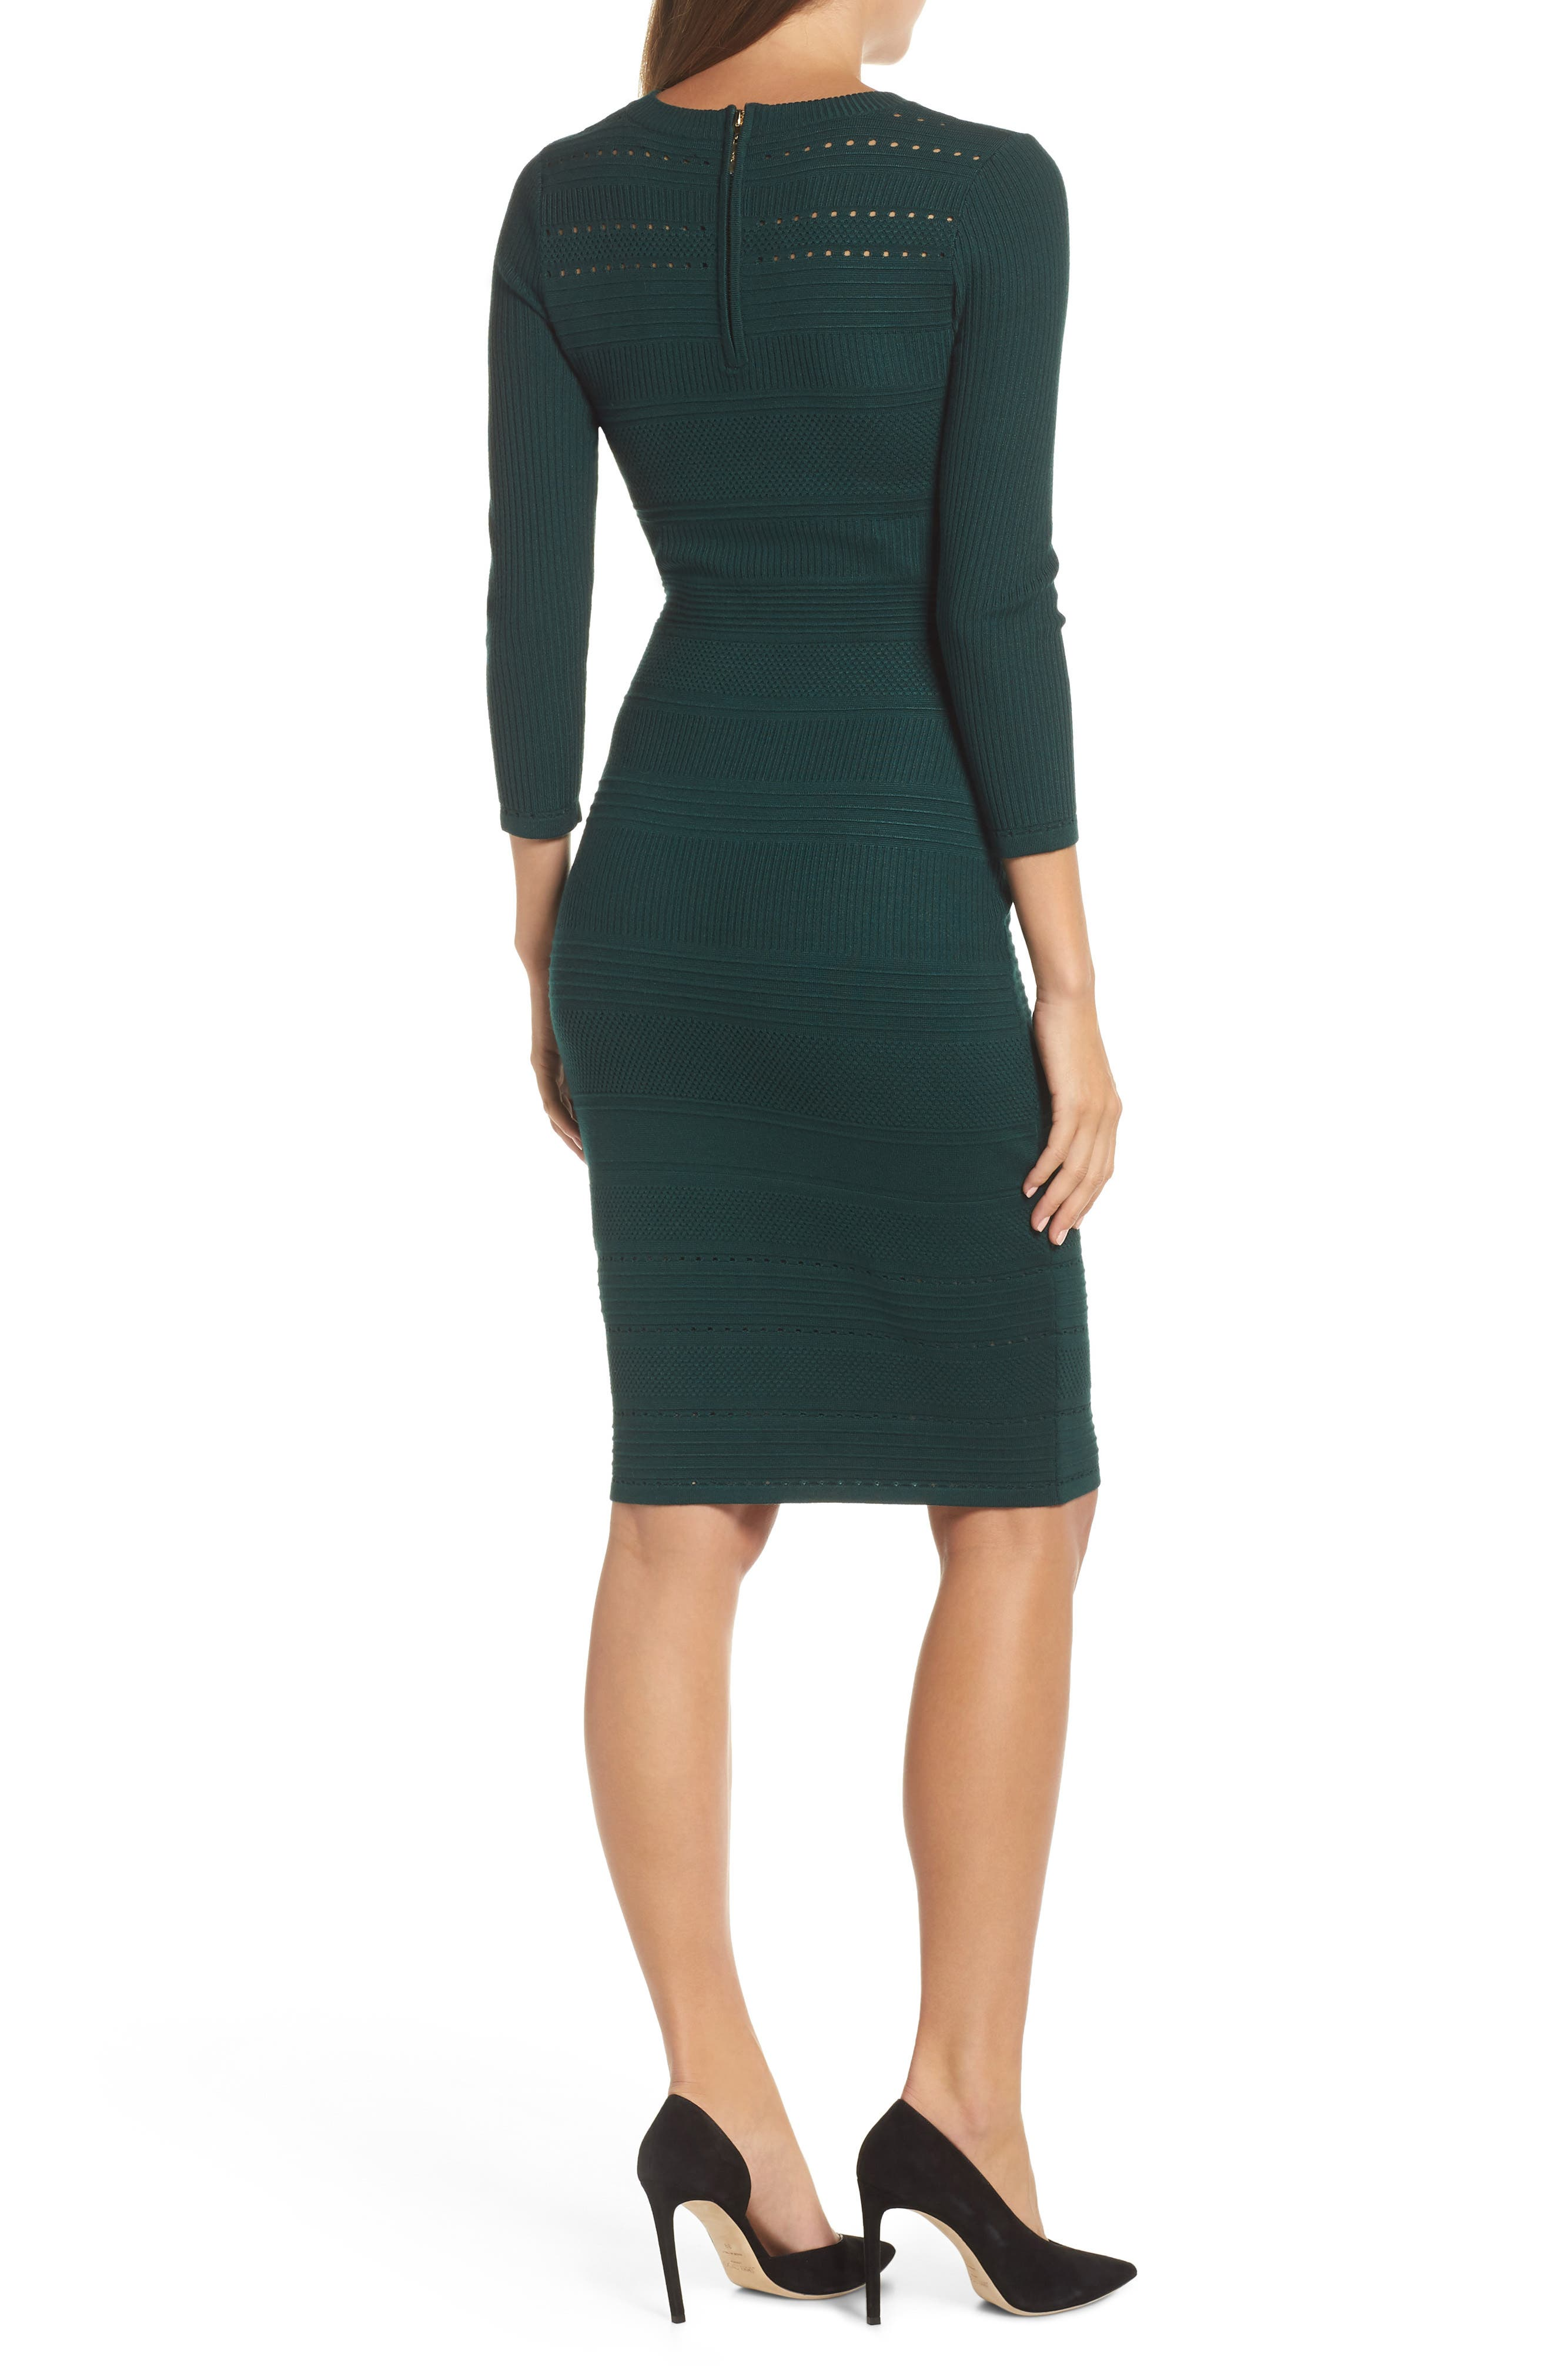 ELIZA J, Stitch Detail Sweater Dress, Alternate thumbnail 2, color, GREEN